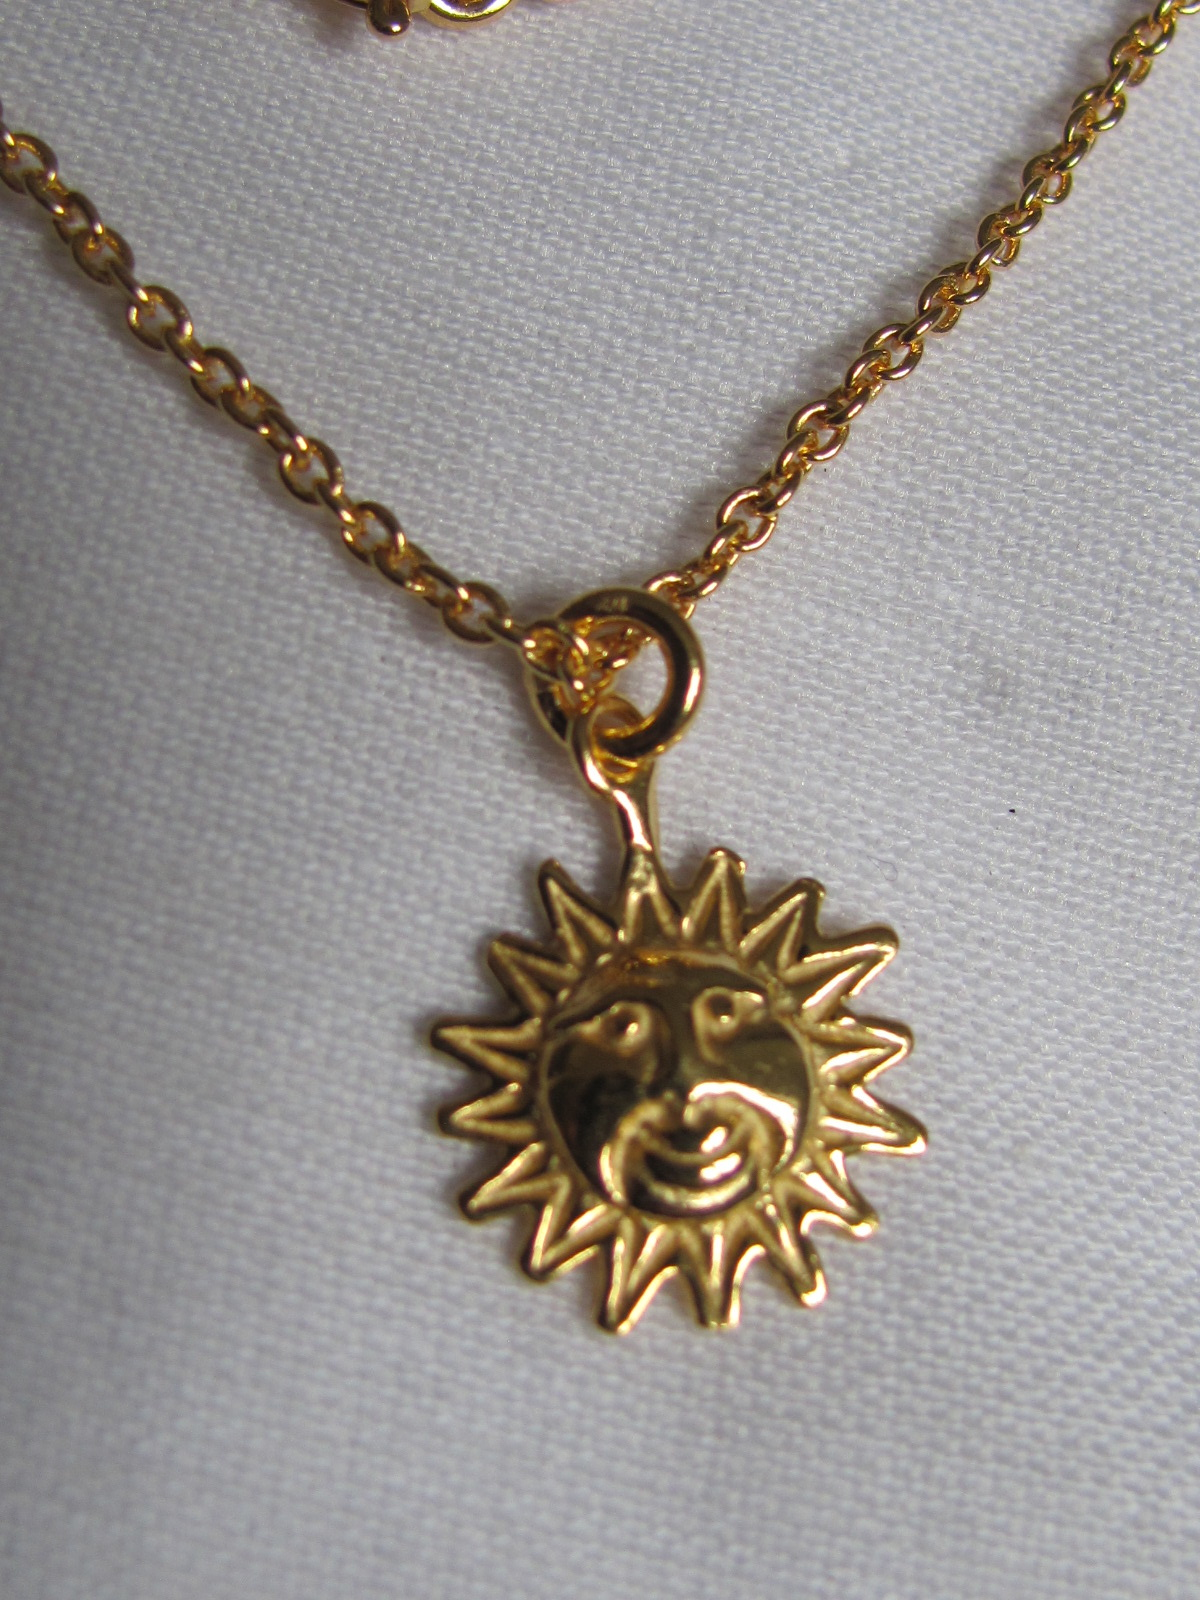 Necklace gold on silver sun charm pendant